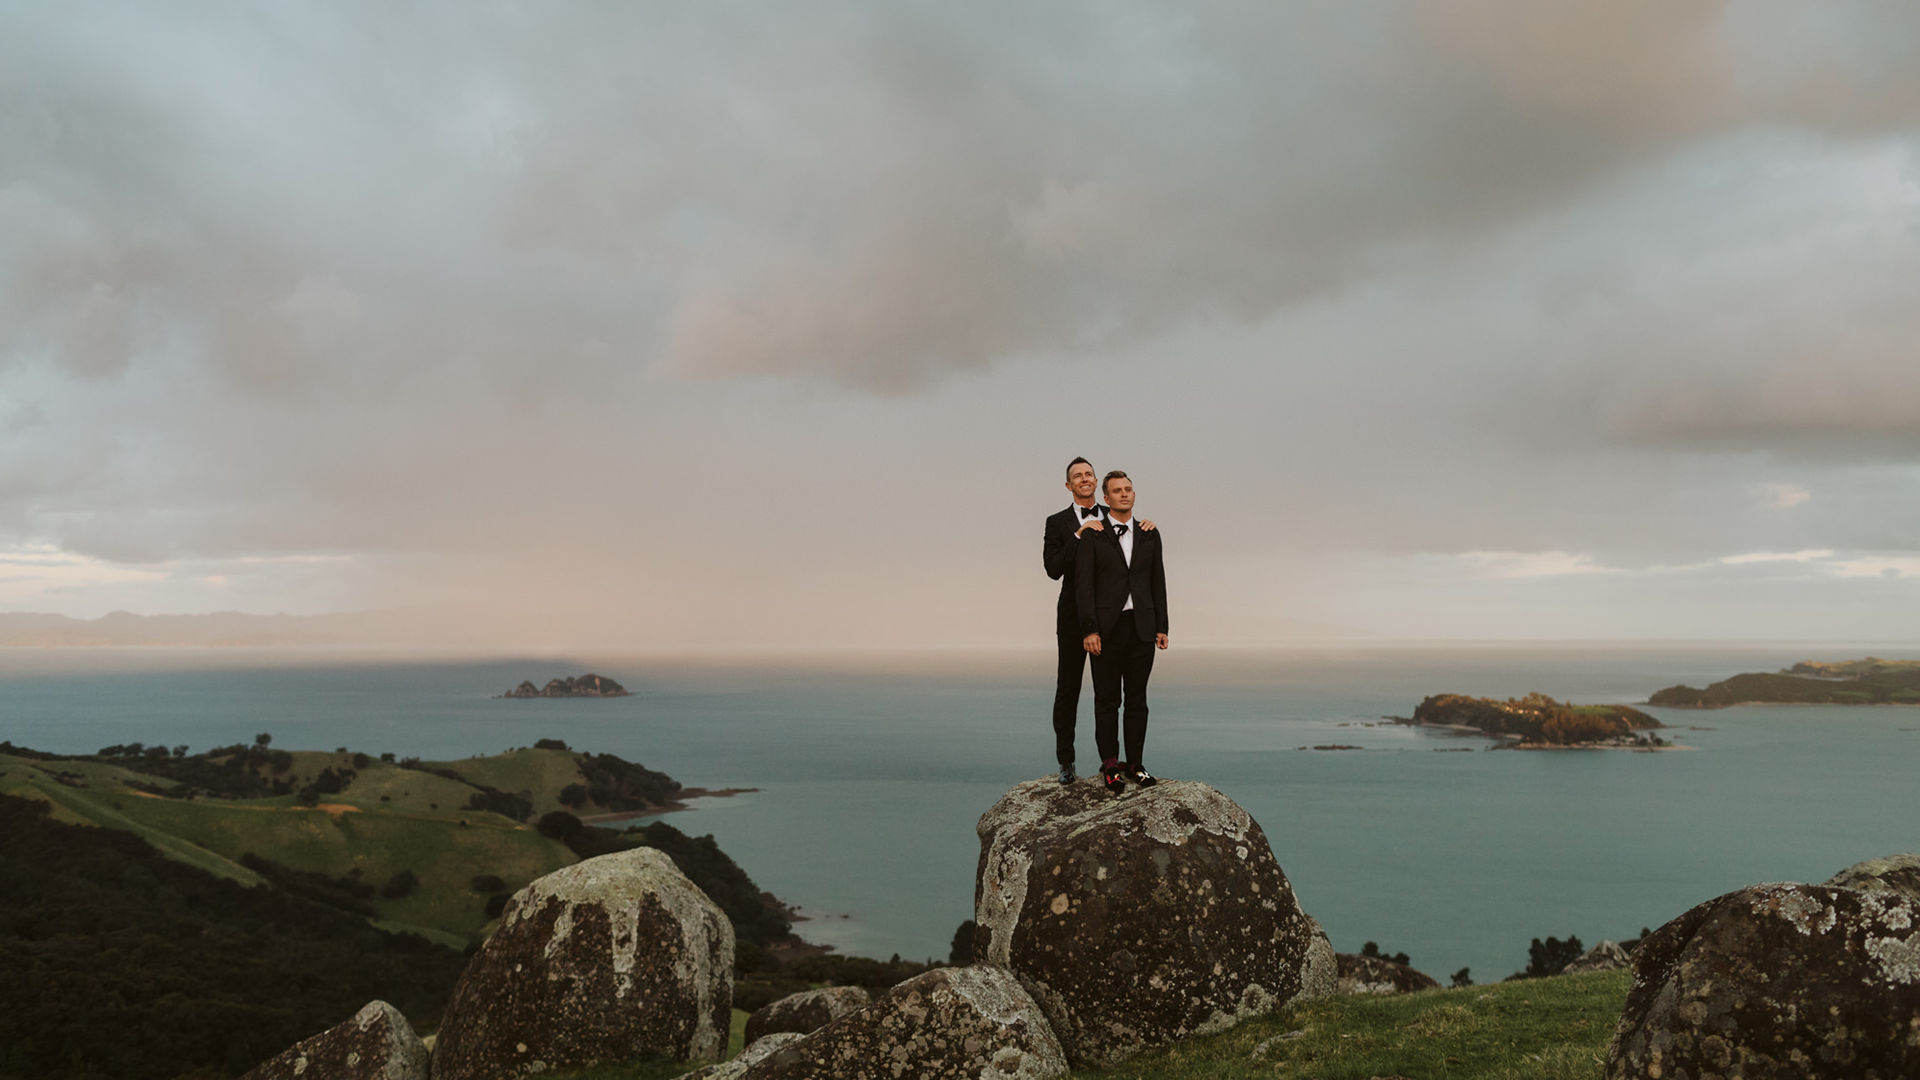 Pete + Anthony | Auckland, New Zealand | Mudbrick Winery